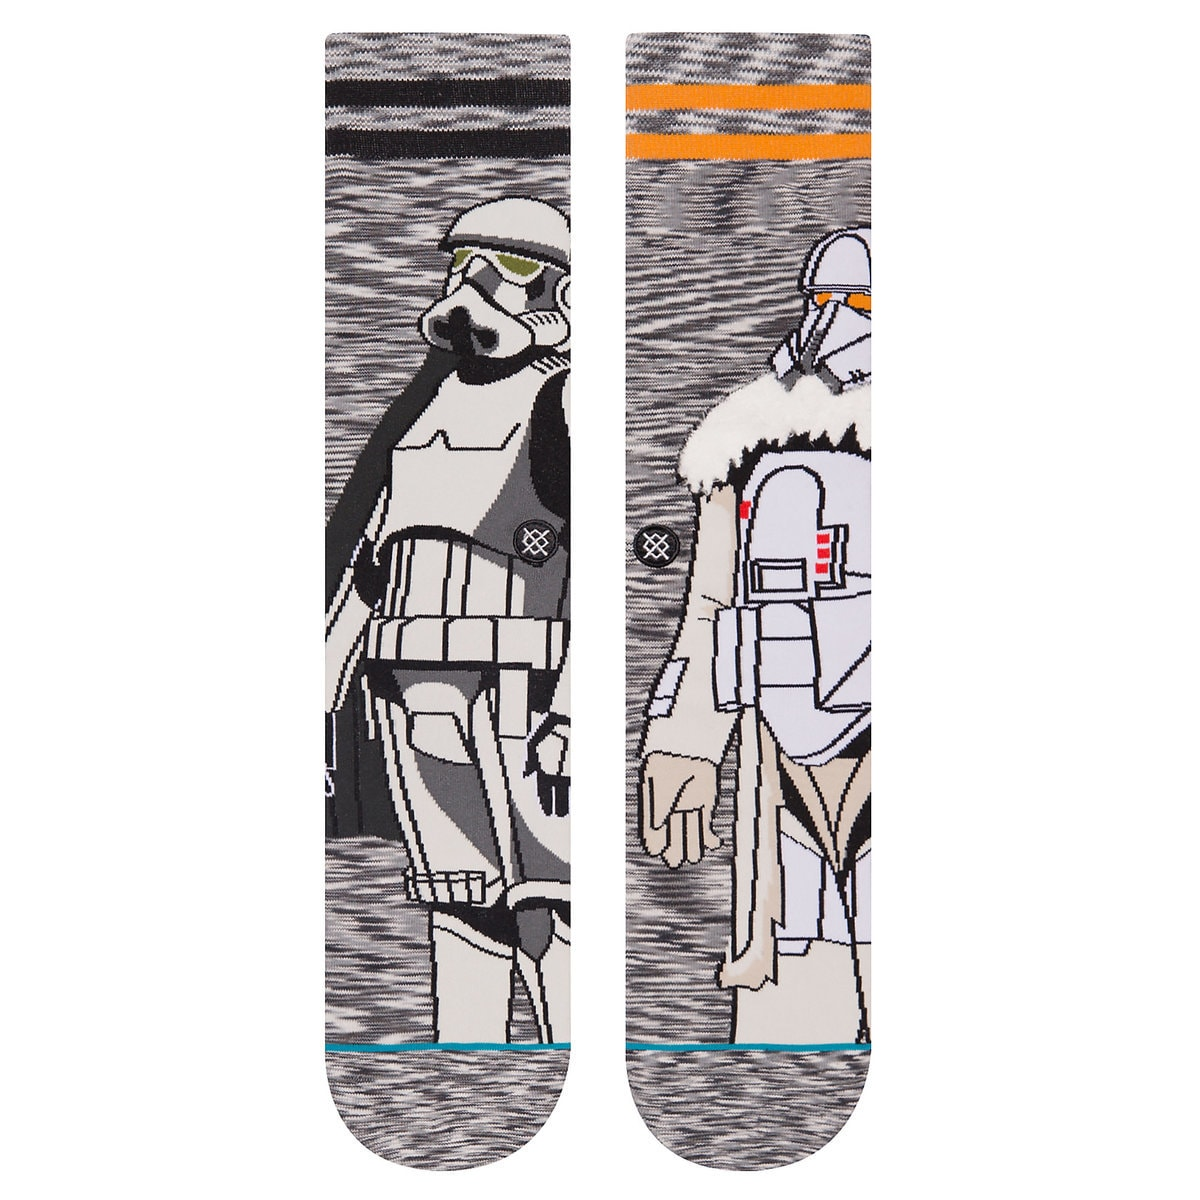 Stormtrooper Socks for Adults by Stance - Solo: A Star Wars Story